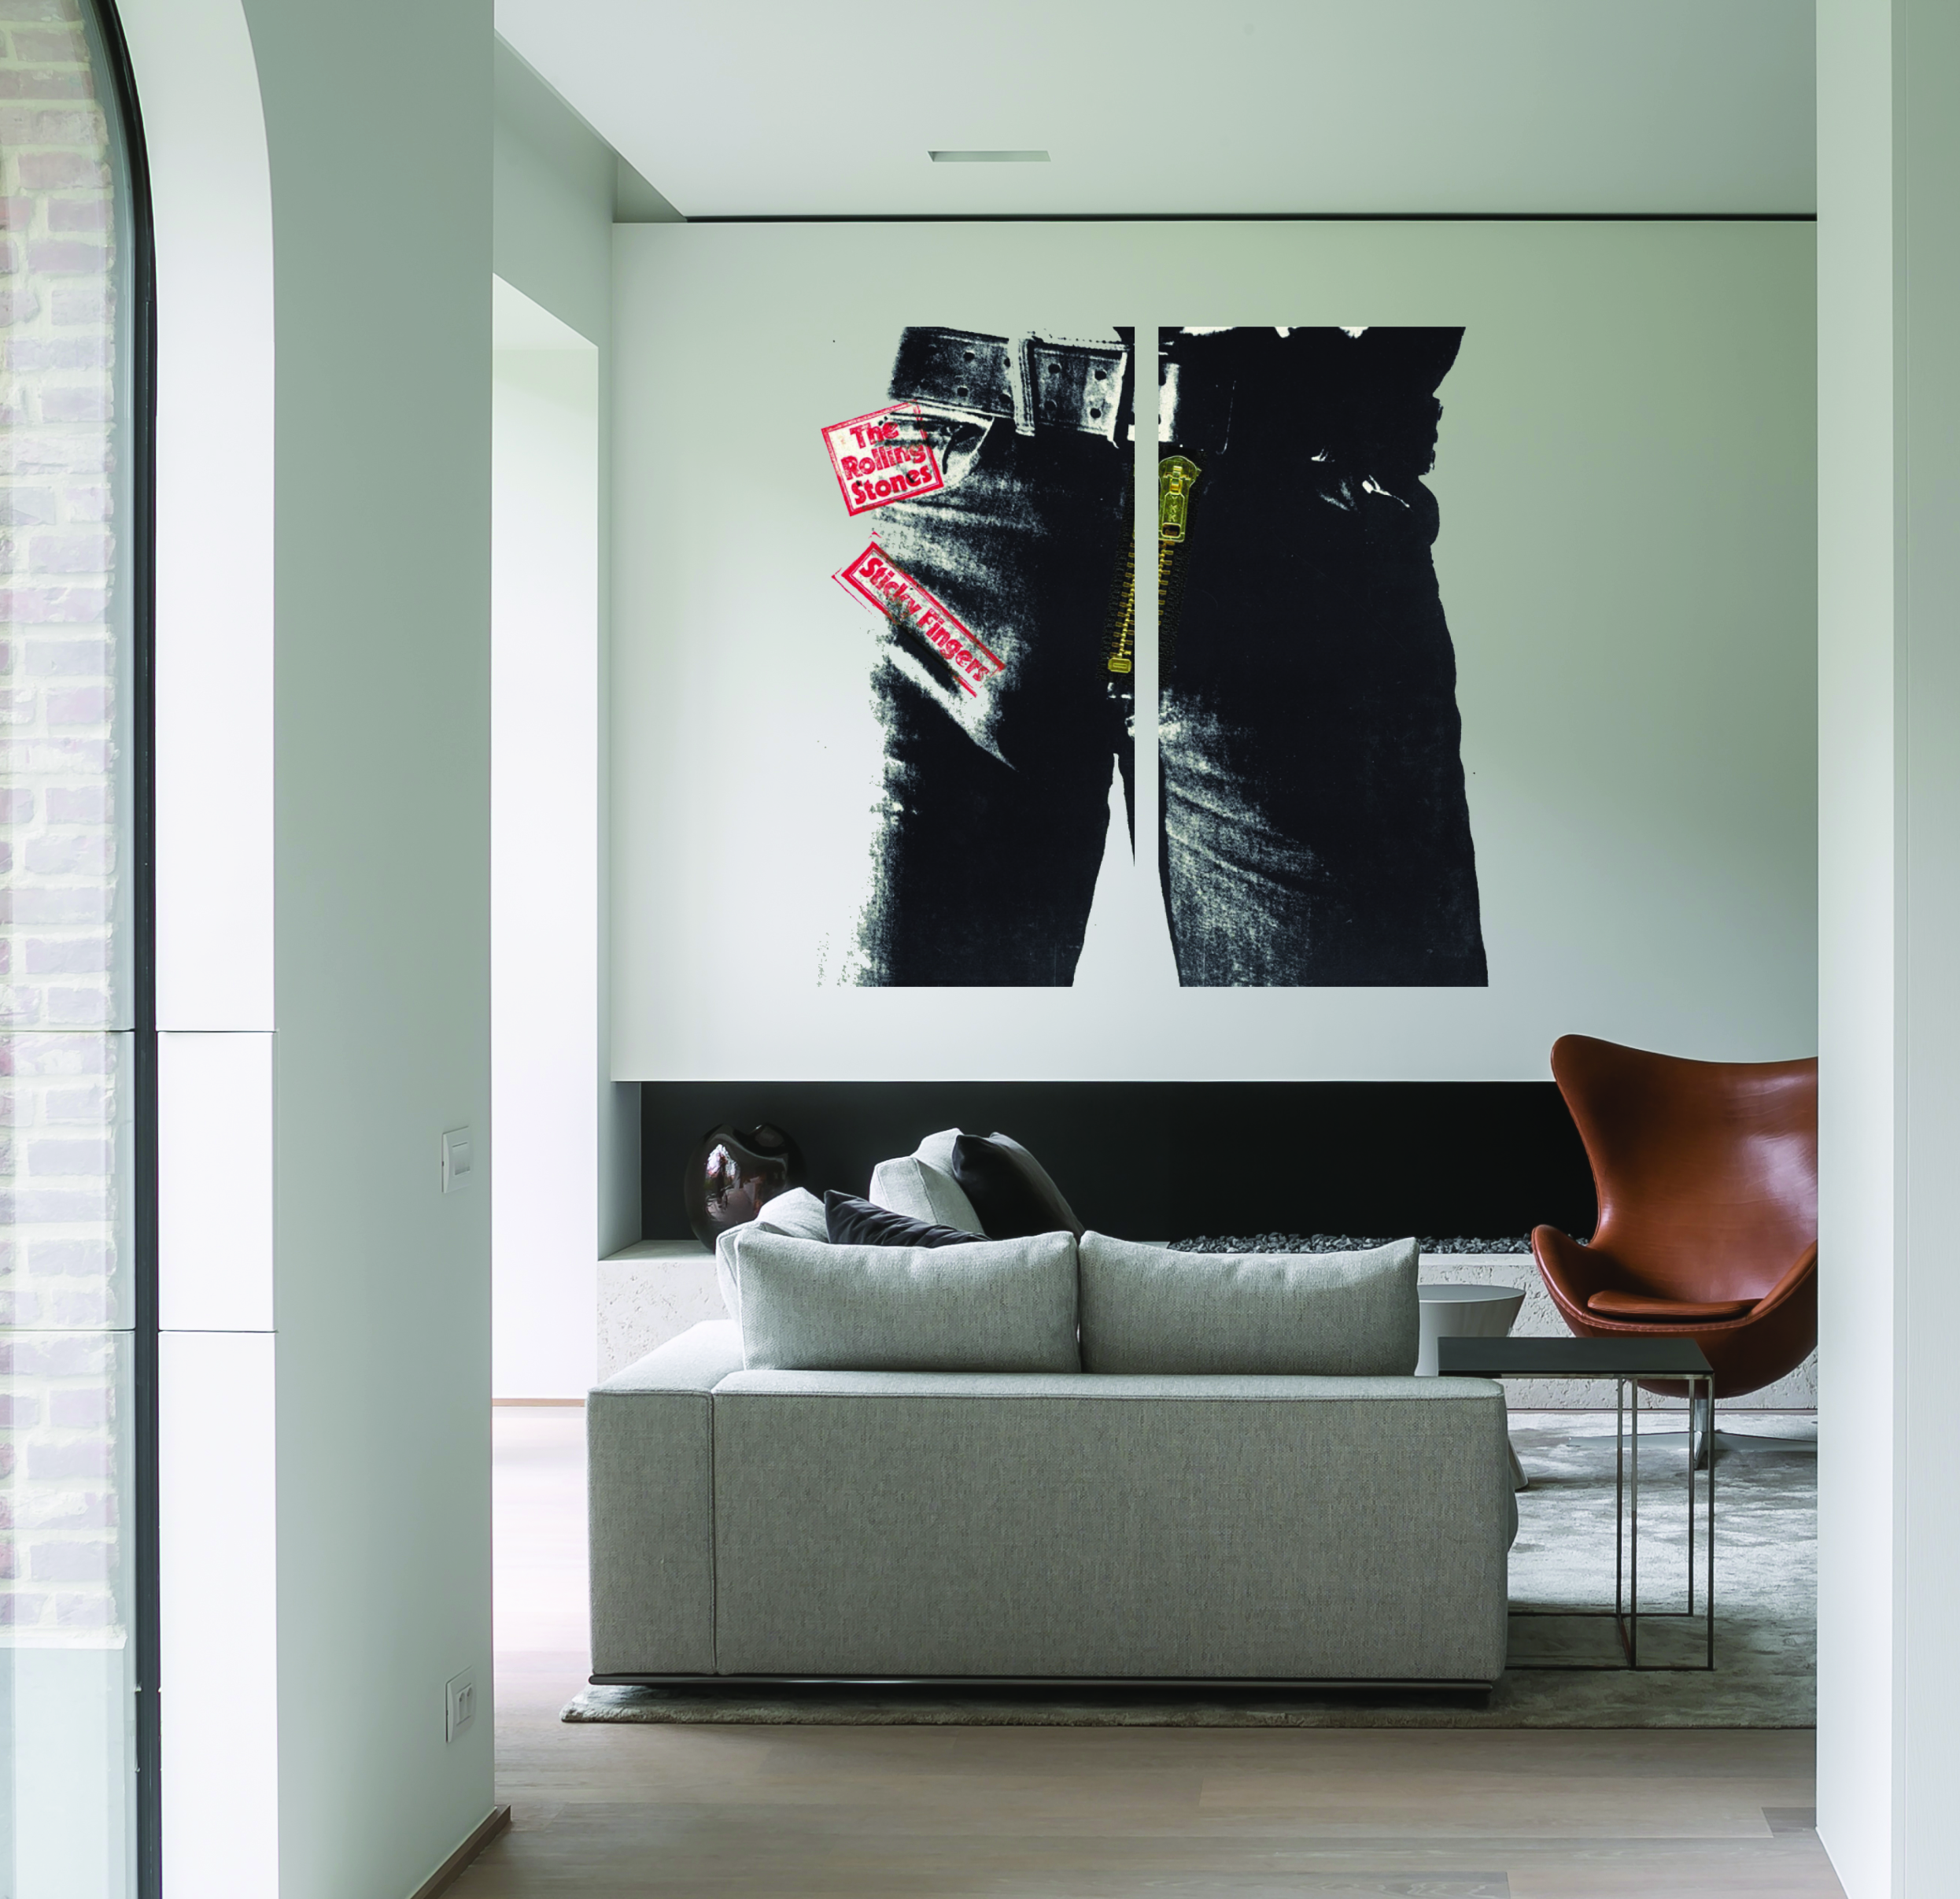 The Rolling Stones Sticky Fingers Album Cover Wall Art In Two Clear Acrylic Sections Mywholewall